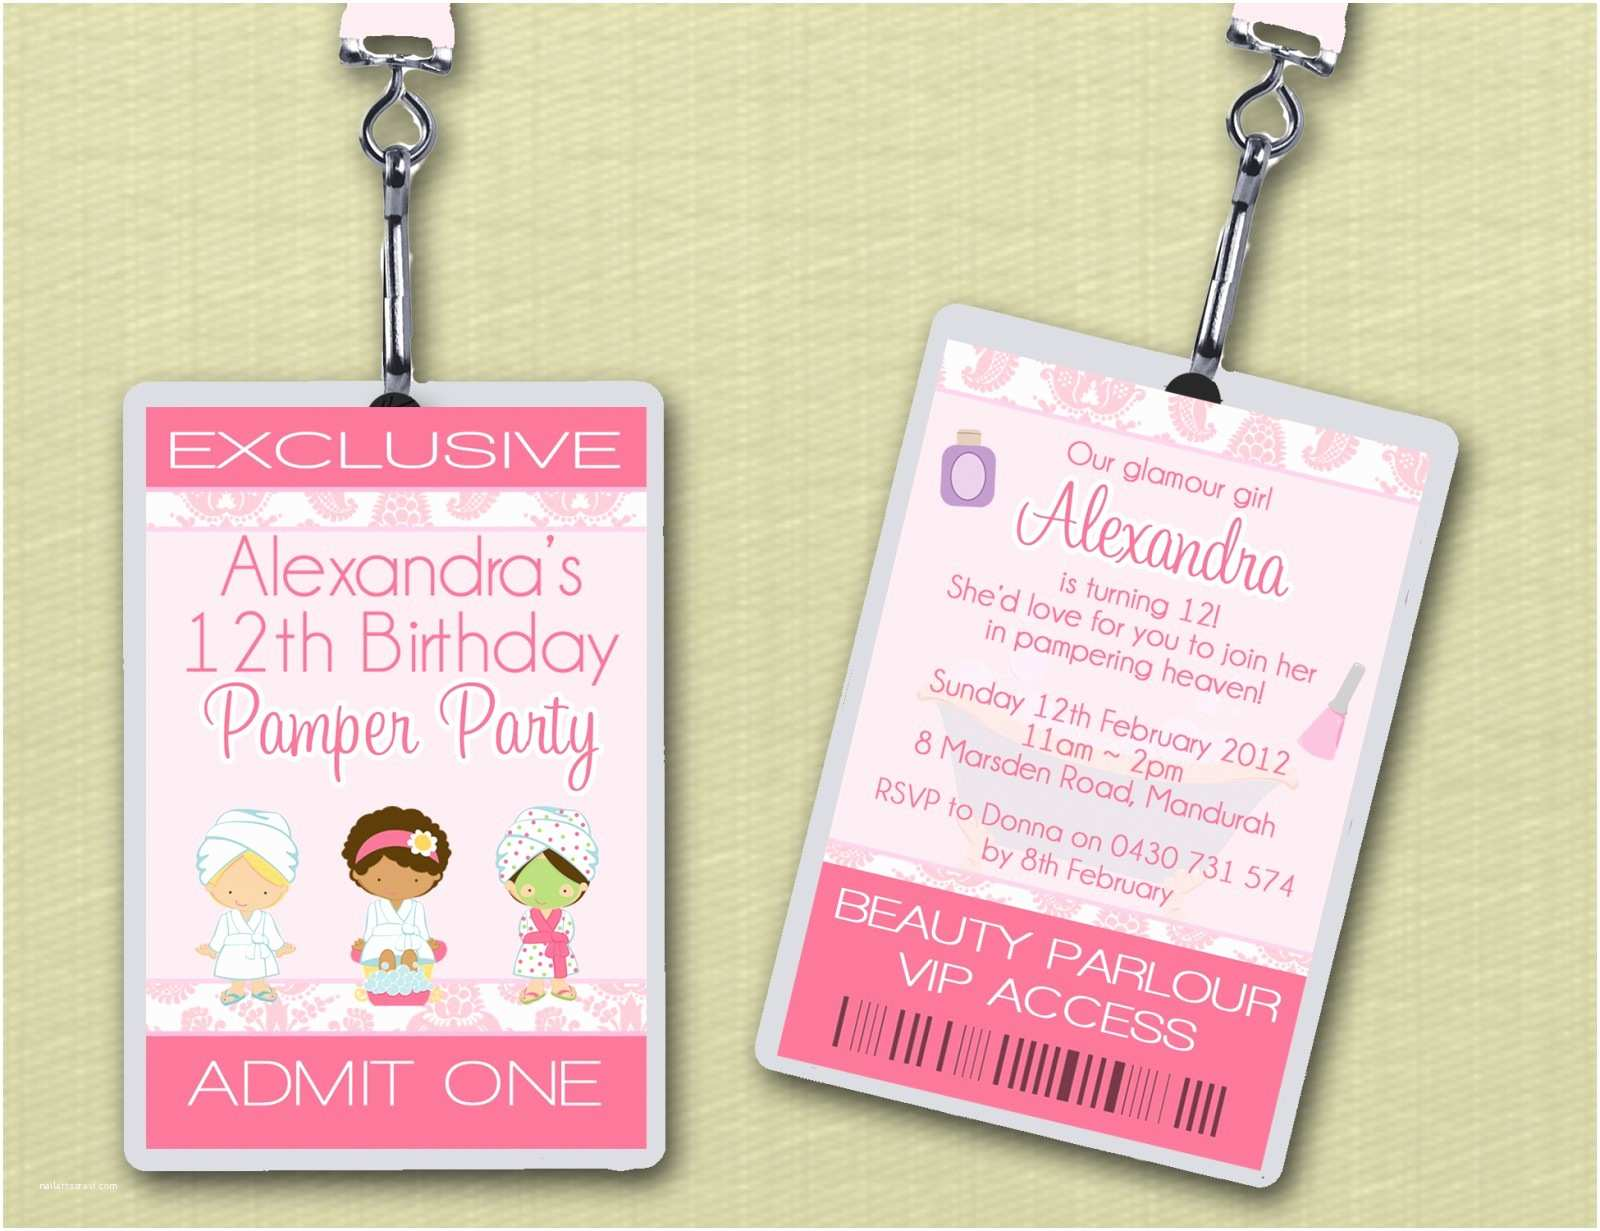 Pamper Party Invitations Vip Lanyard Pamper Party Birthday Invitations